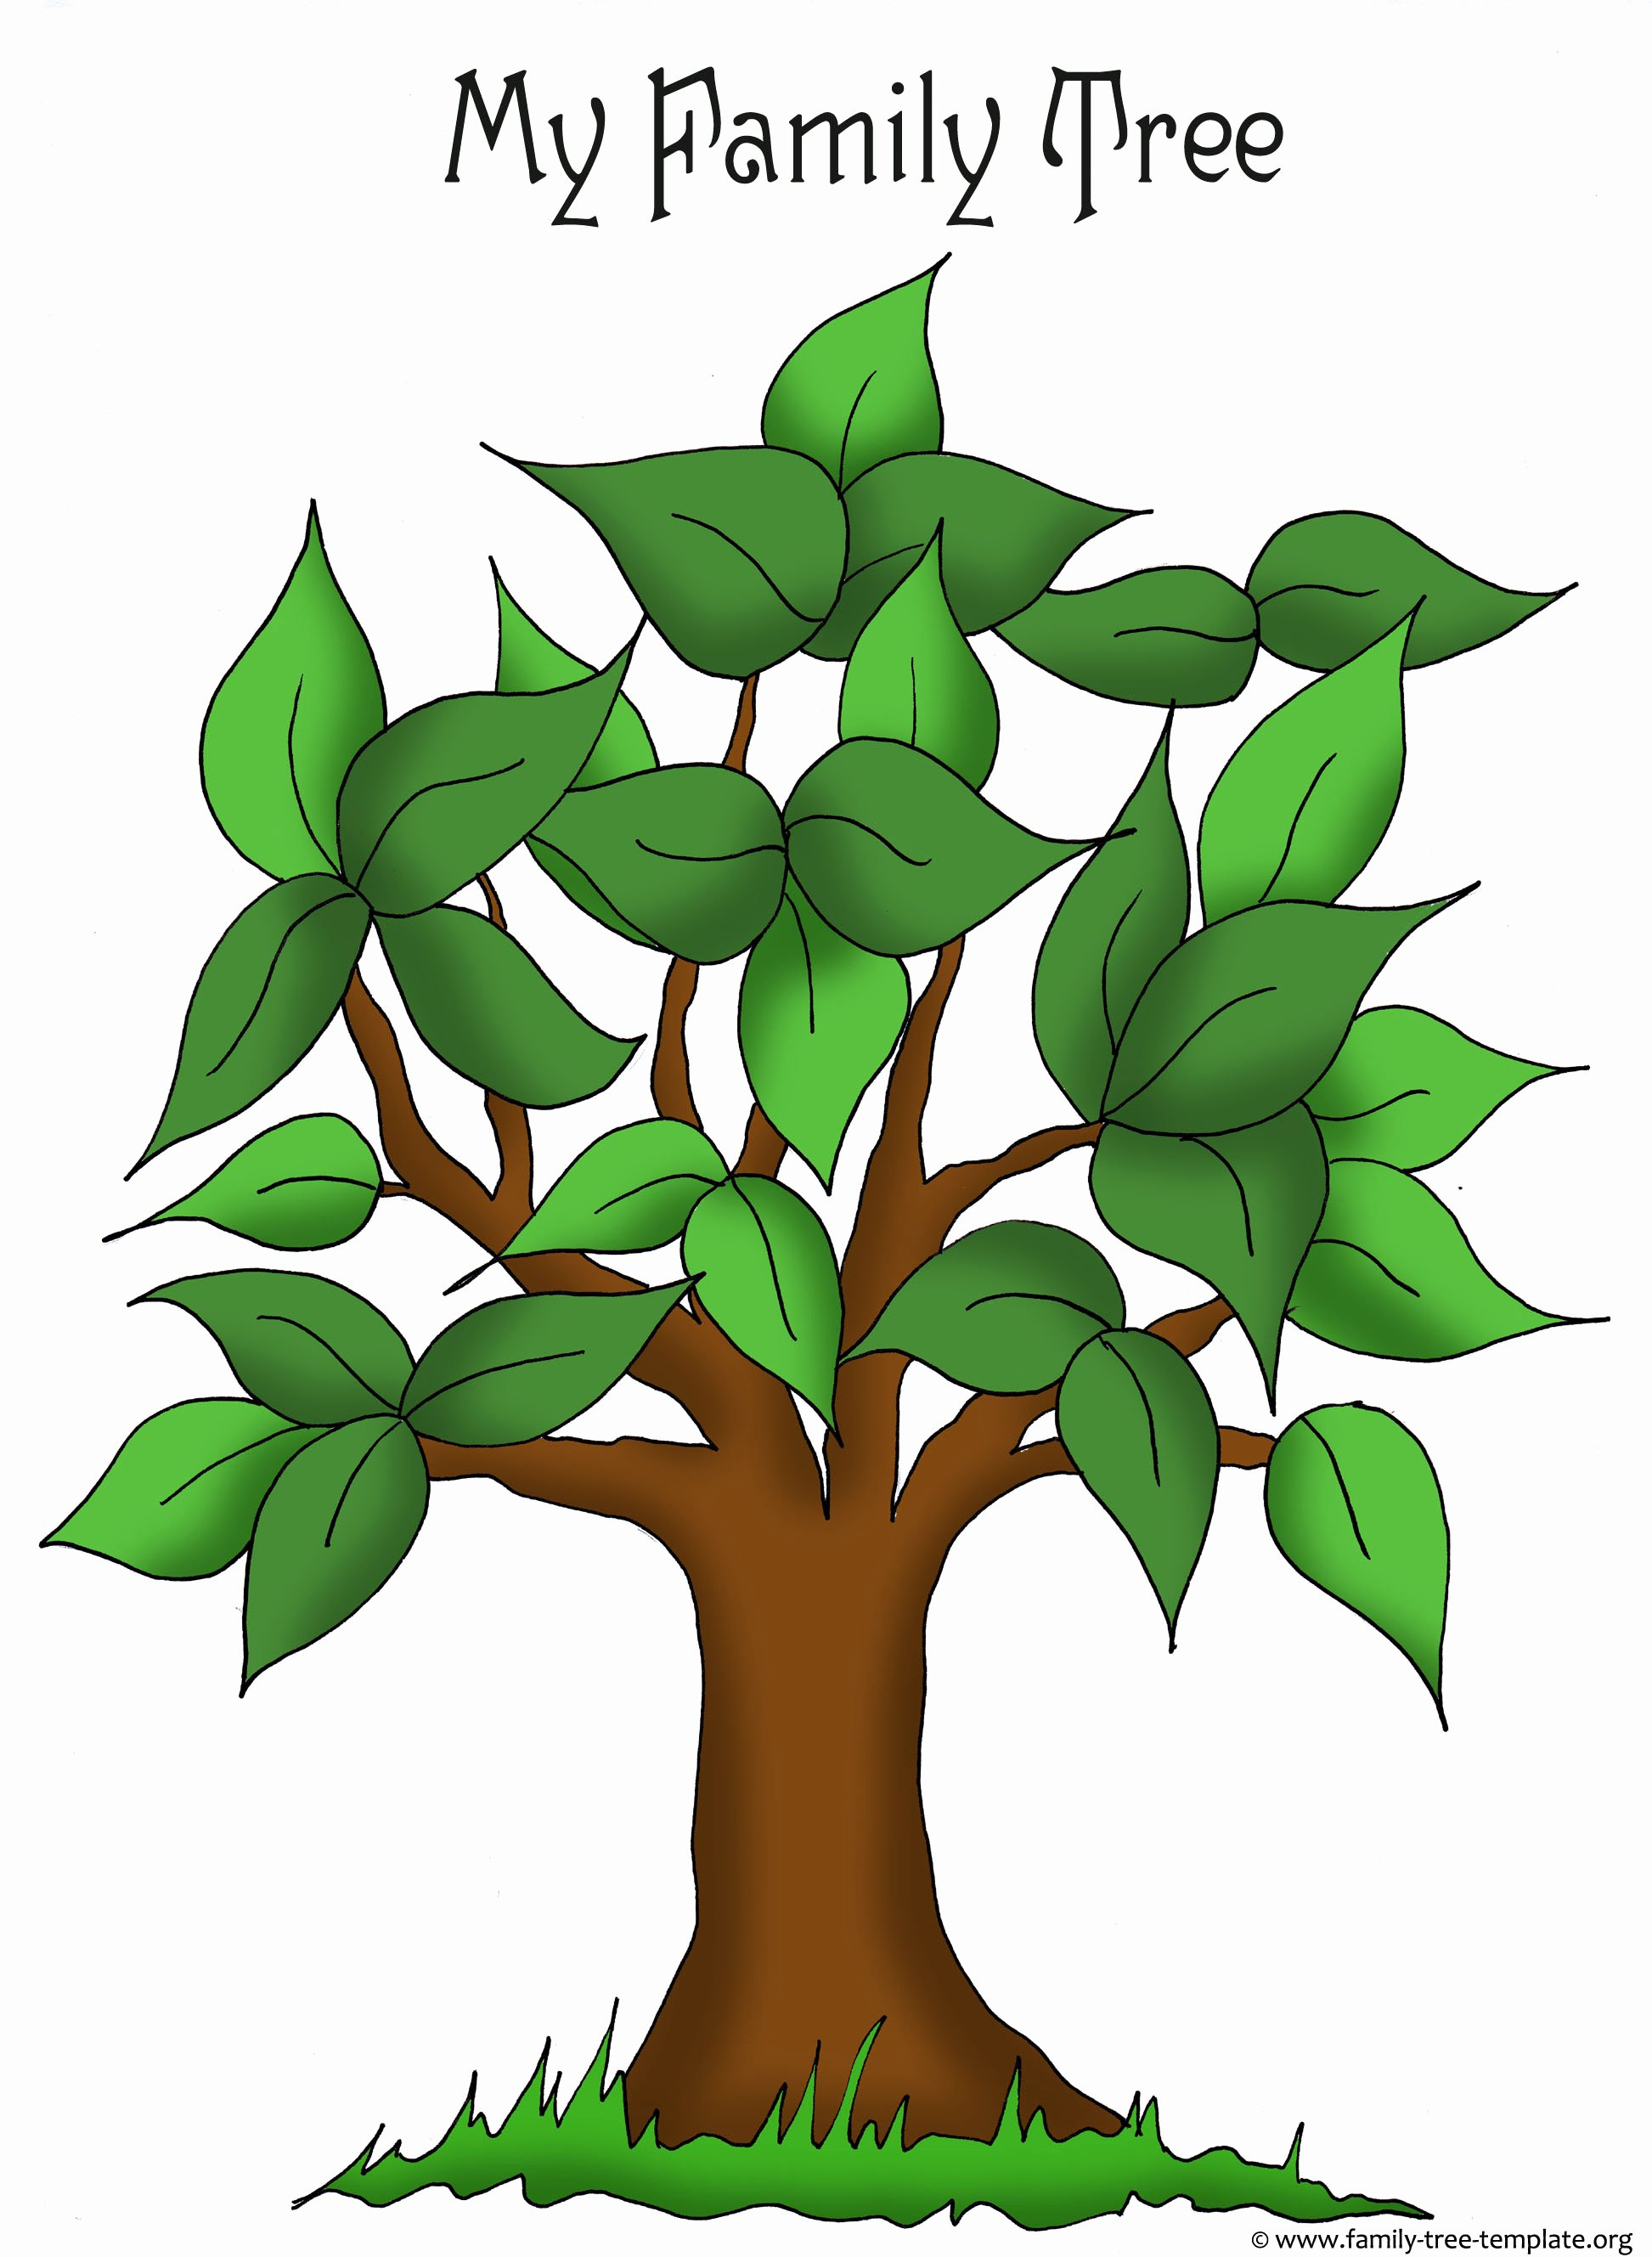 Blank Family Tree Poster Lovely Family Tree Templates & Genealogy Clipart for Your